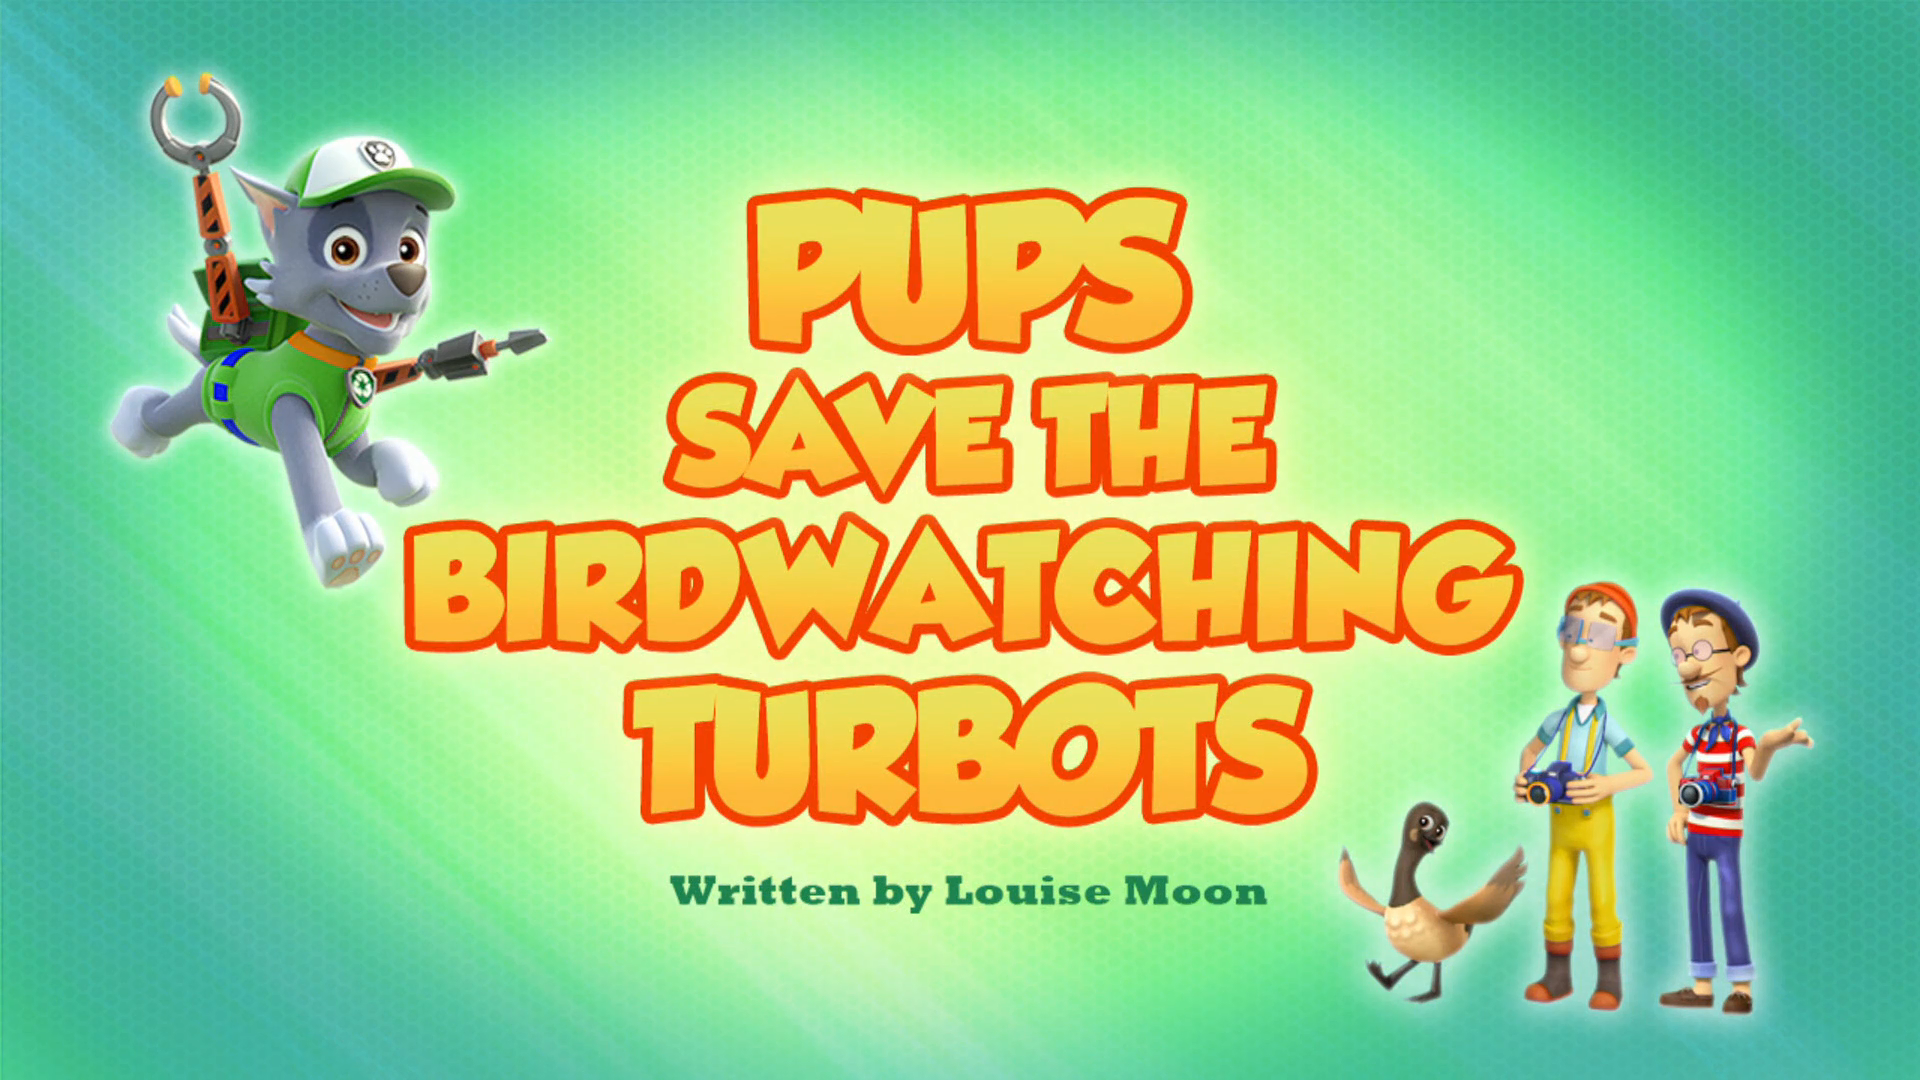 Pups Save the Birdwatching Turbots